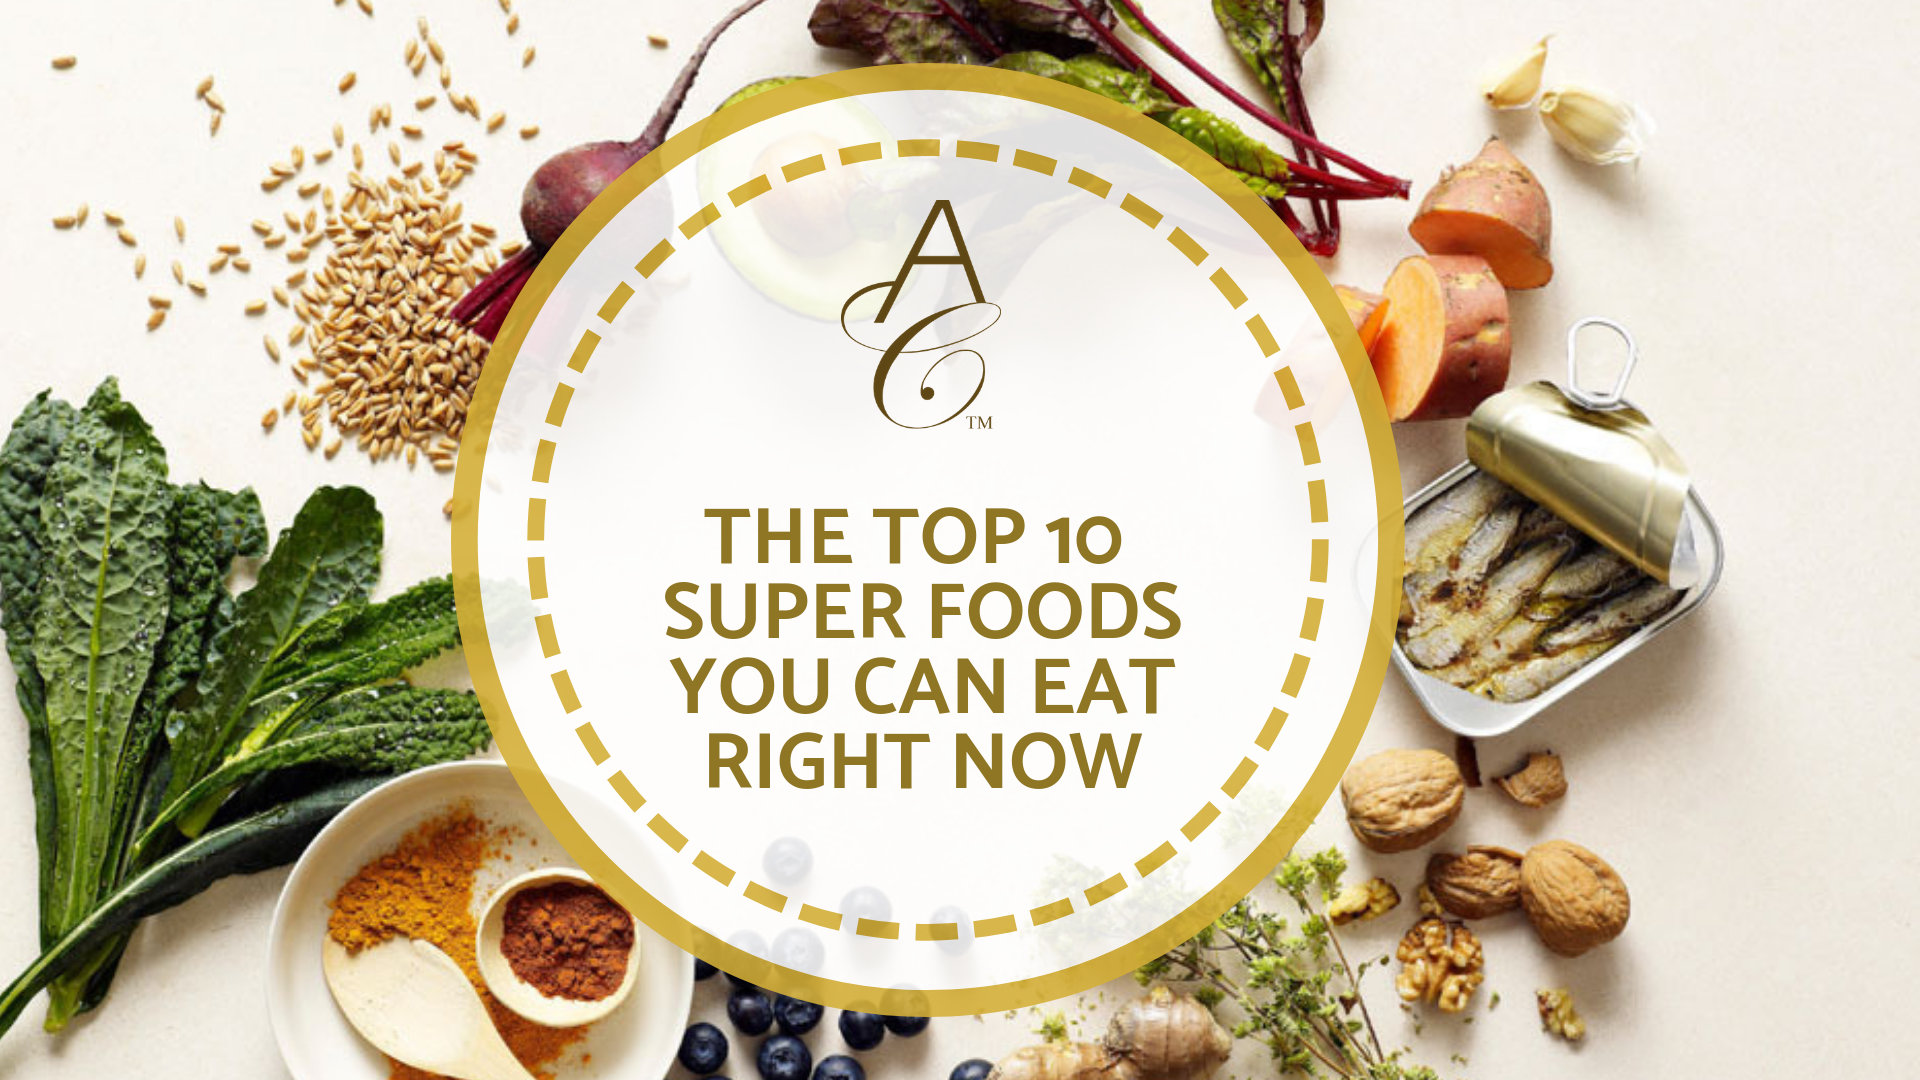 The top 10 super foods you can eat right now